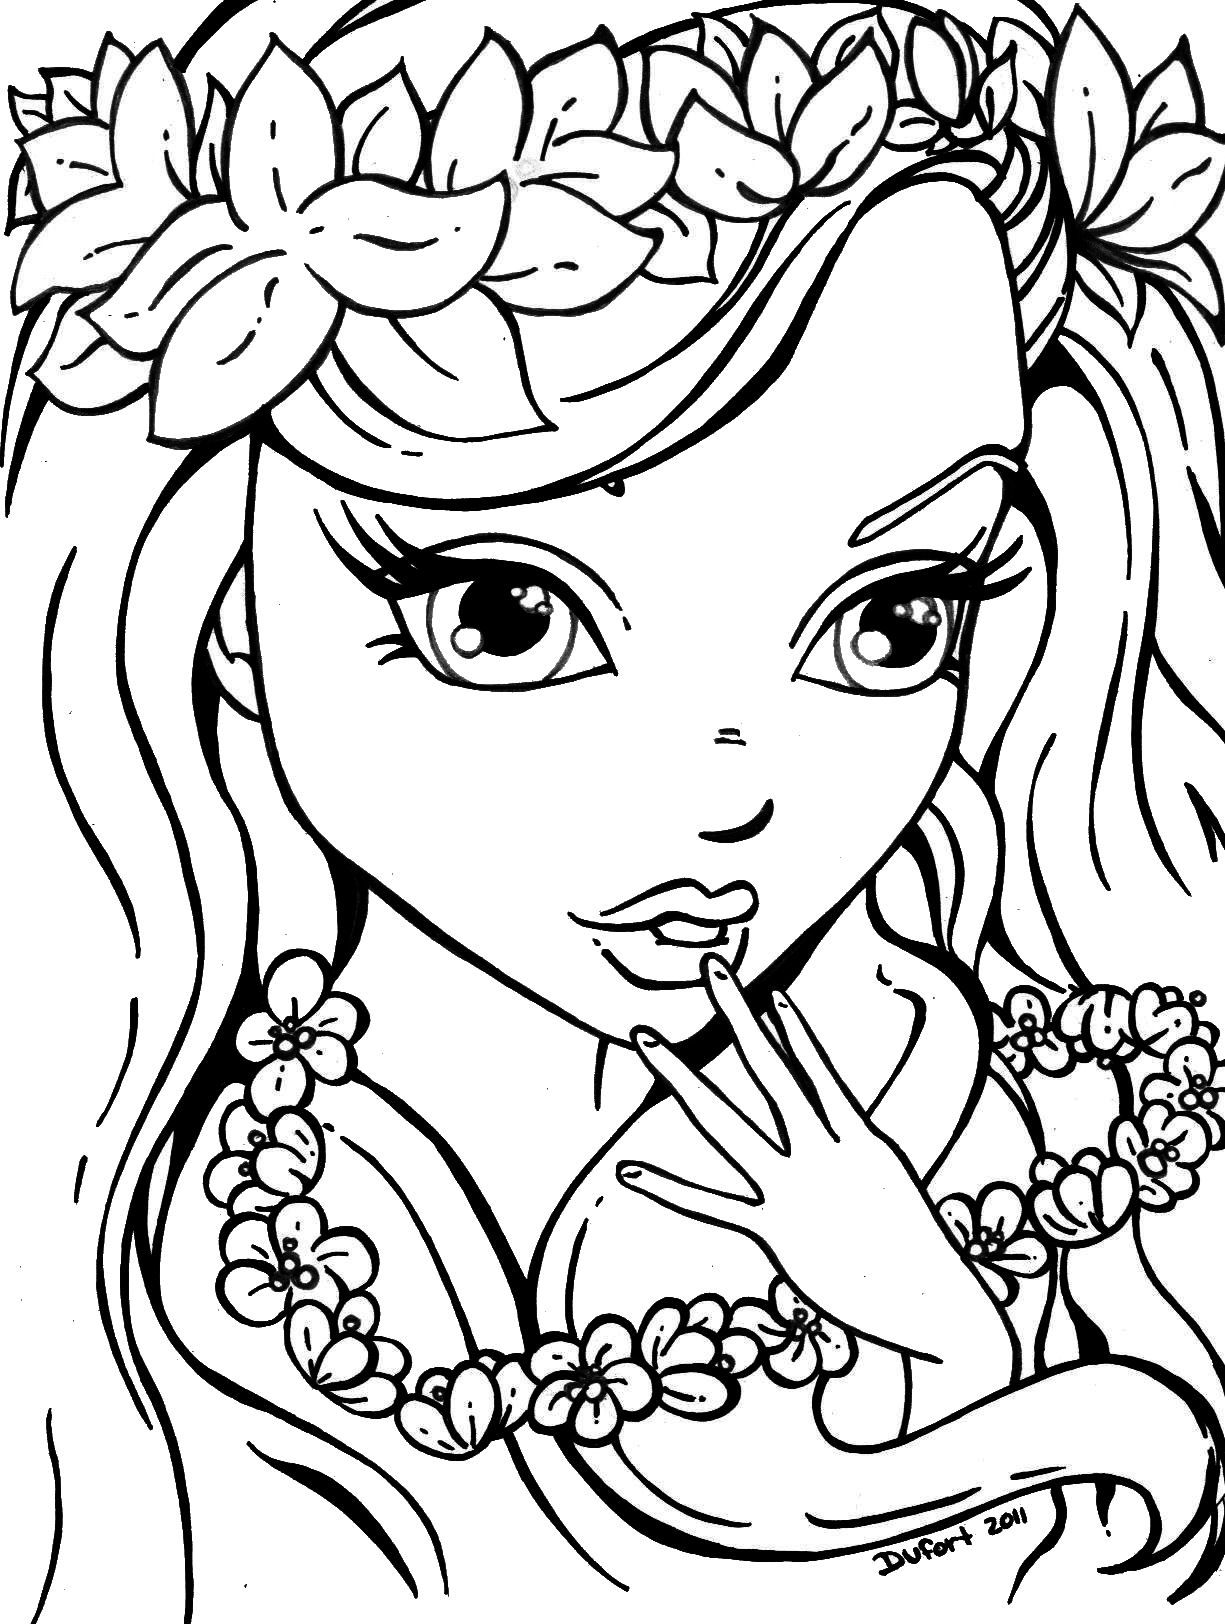 a coloring picture coloring book pages printable activity shelter coloring picture a